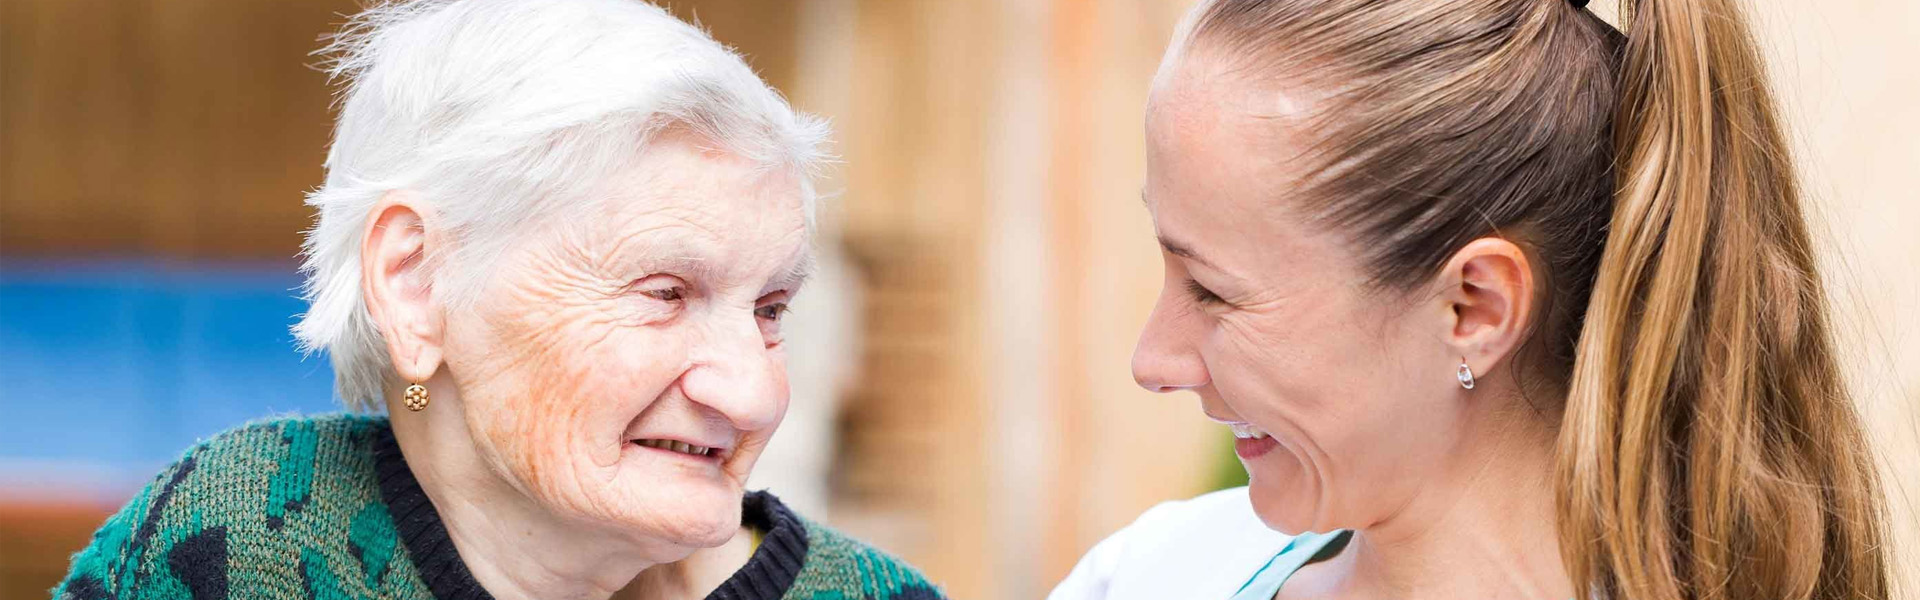 Home Health Agencies and Personal Care Agencies - Senior Care Center